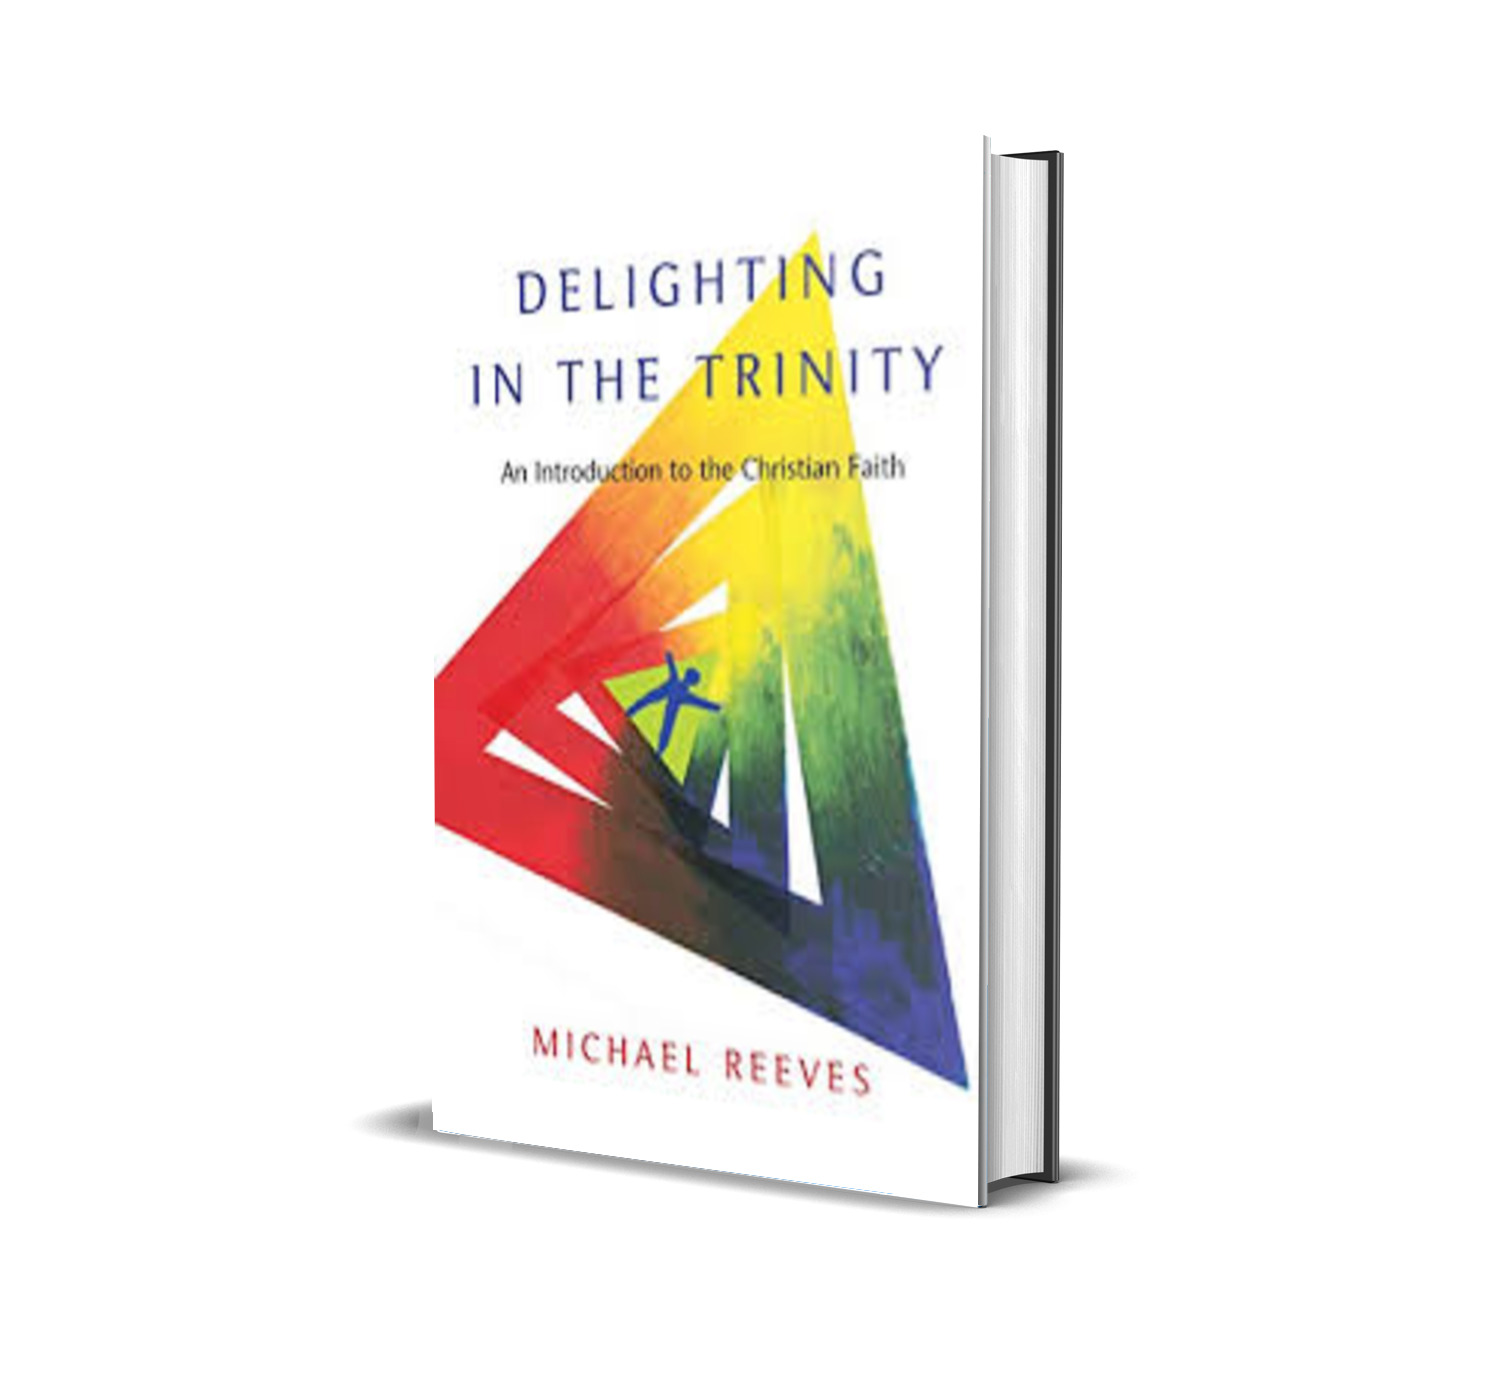 delighting in the trinity - Michael reeves